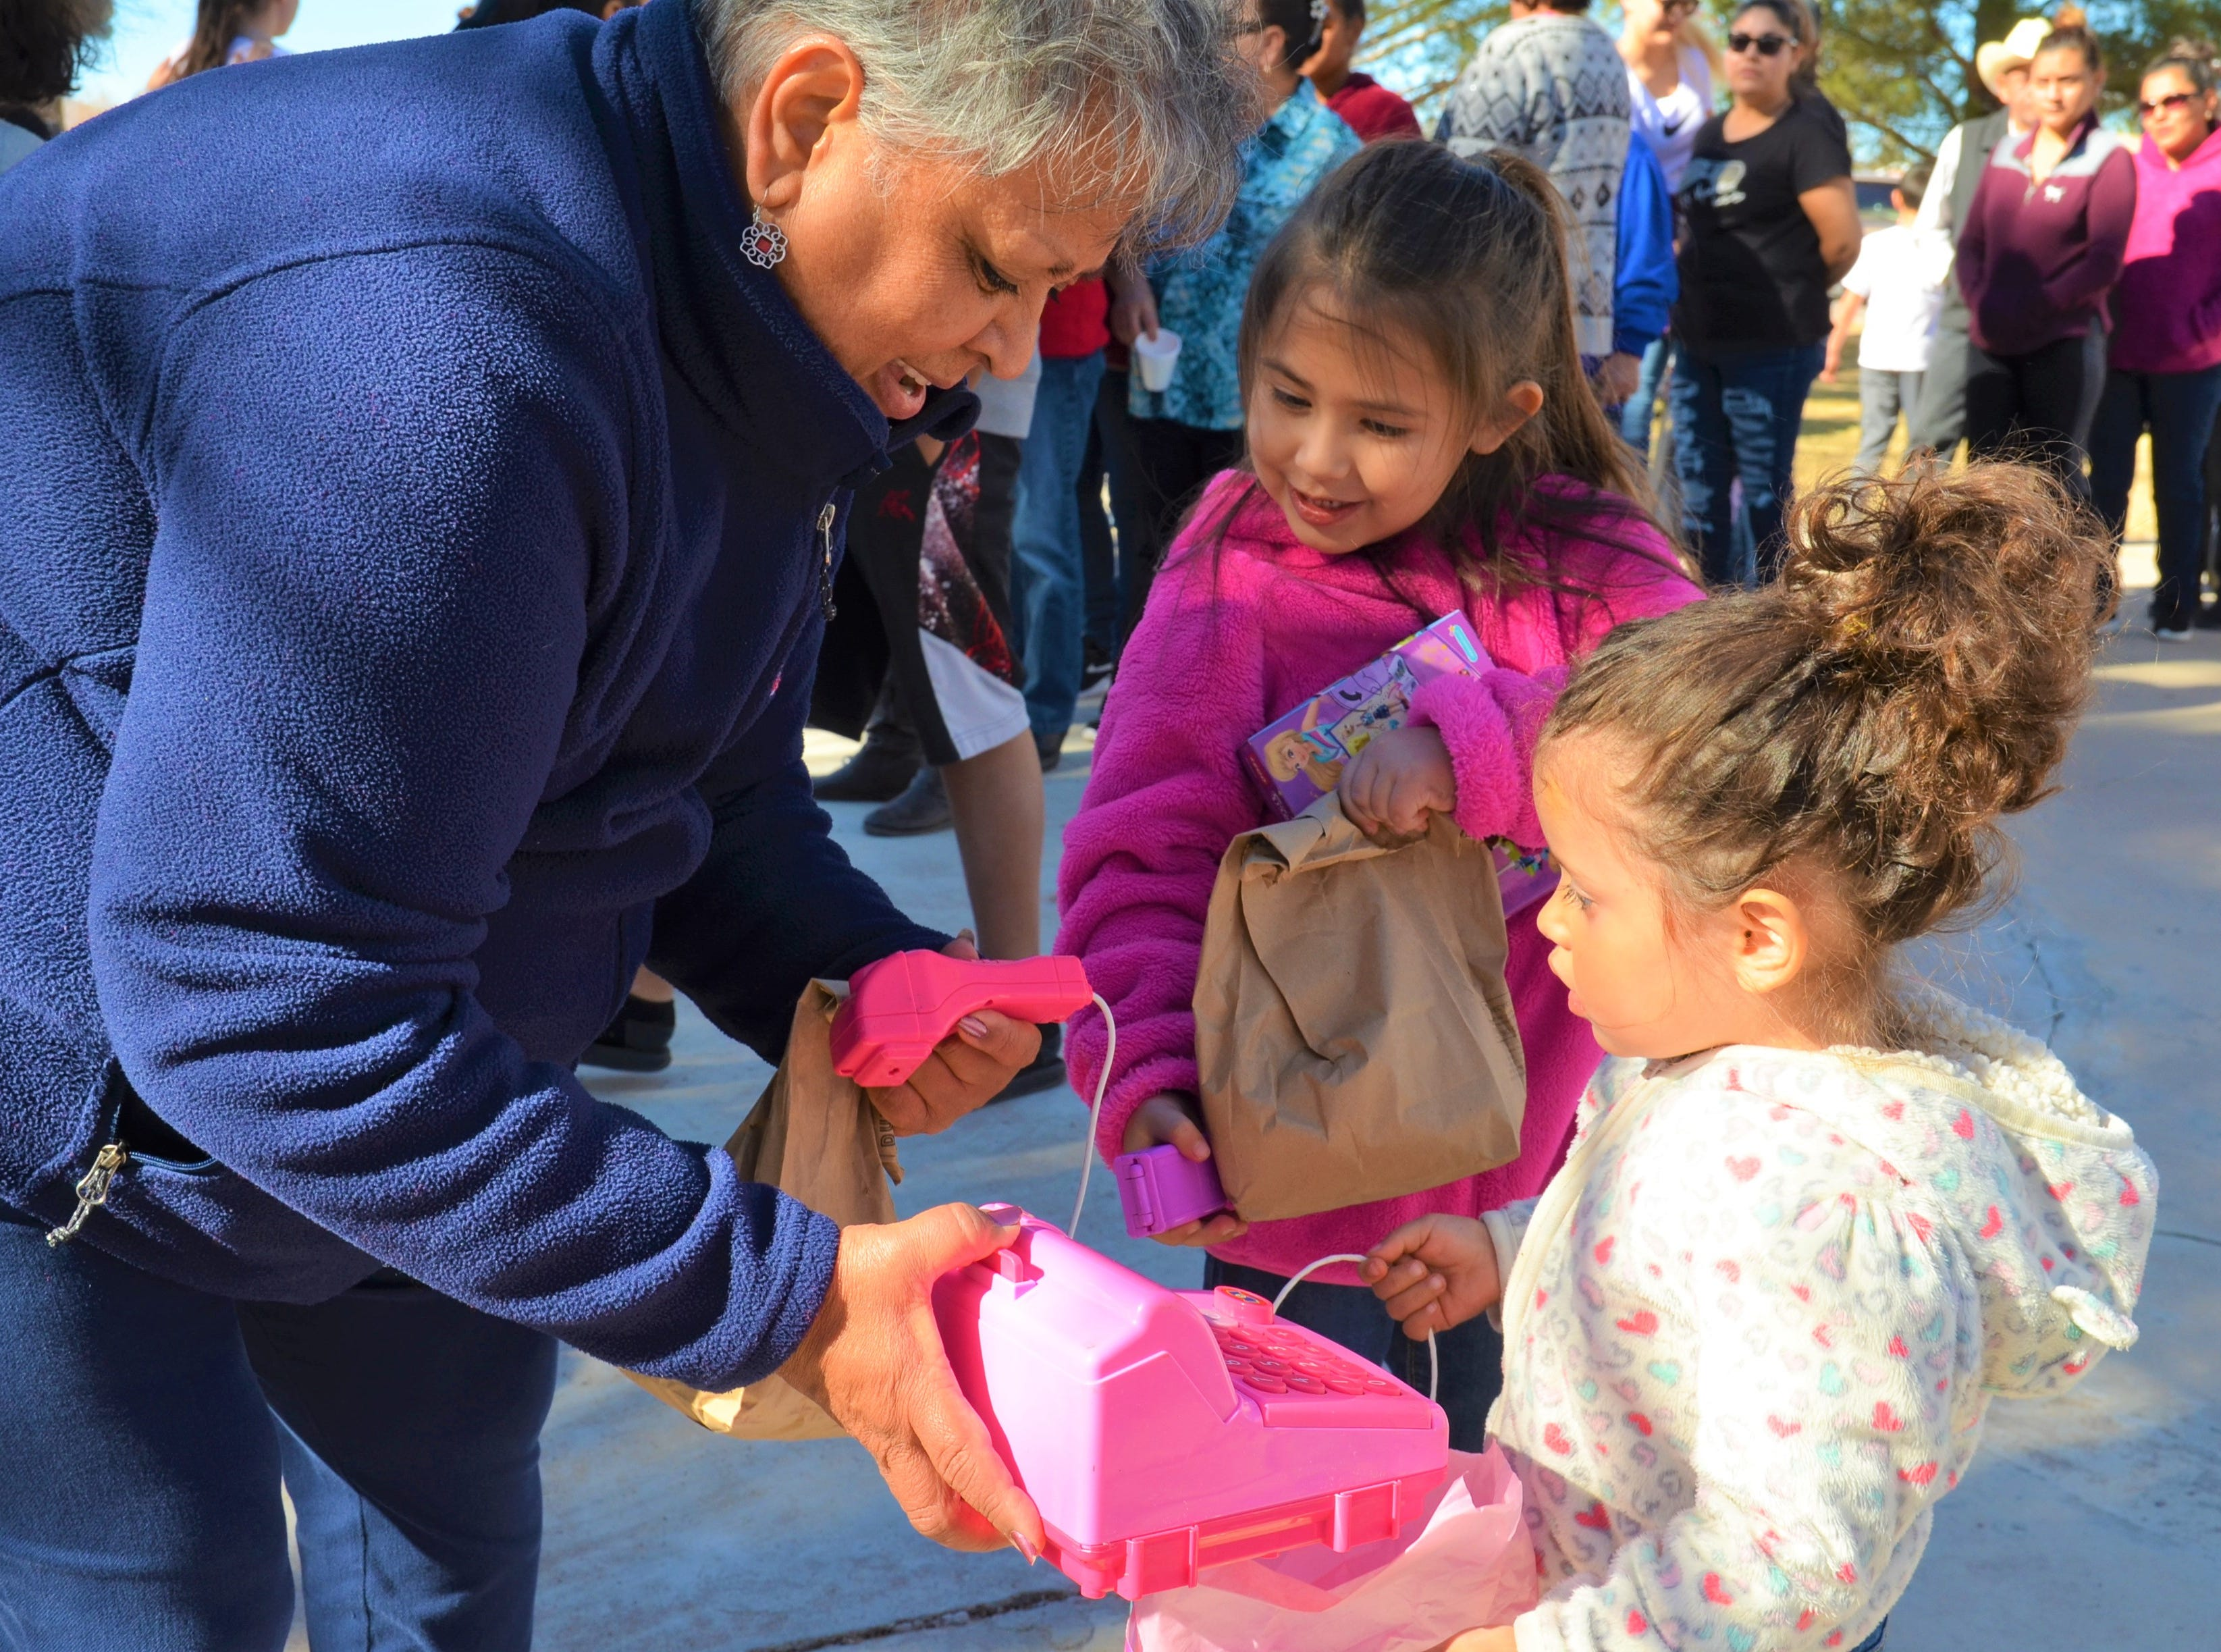 From left, grandma Carmen Porras, Mia Sanchez, 5, look to see what 2-year-old Carmen Sanchez has received from Santa Claus -- a toy cash register.